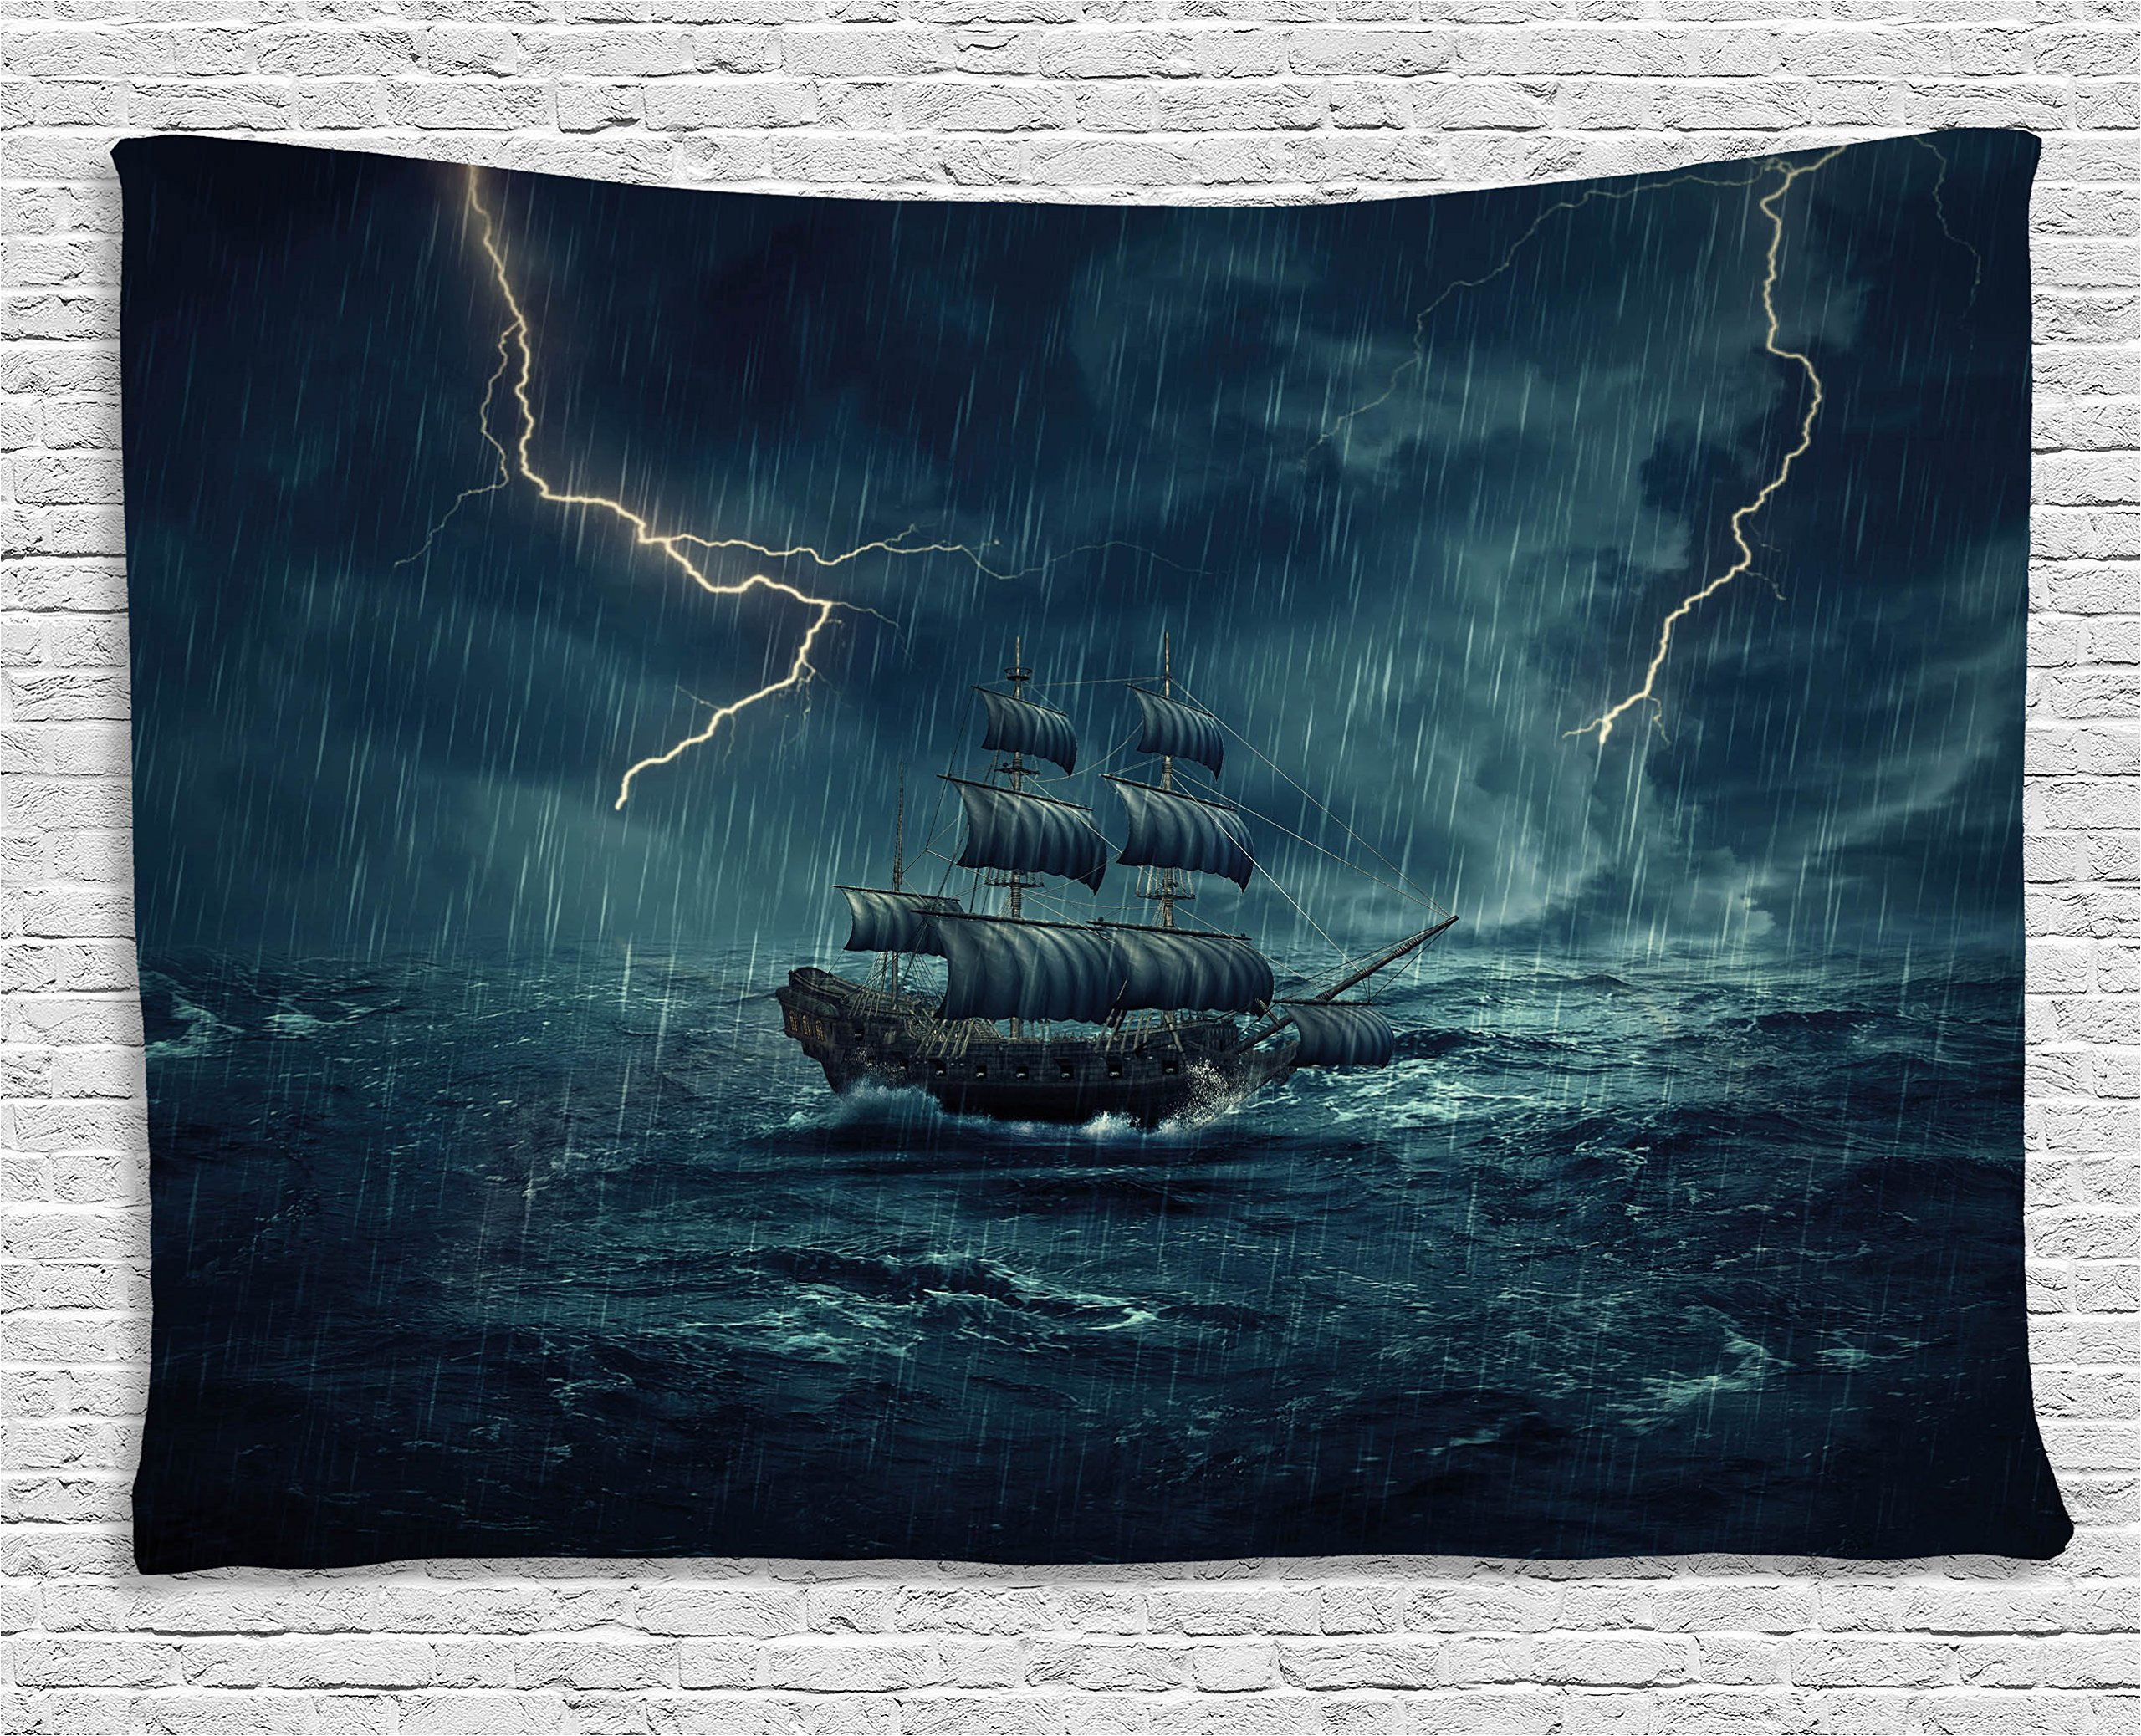 Ambesonne Landscape Tapestry, Stormy Rainy Weather Waves Pirate Vintage Ship Sailing Oil Paint, Wall Hanging for Bedroom Living Room Dorm, 60 W X 40 L inches, White and Dark Cadet Blue